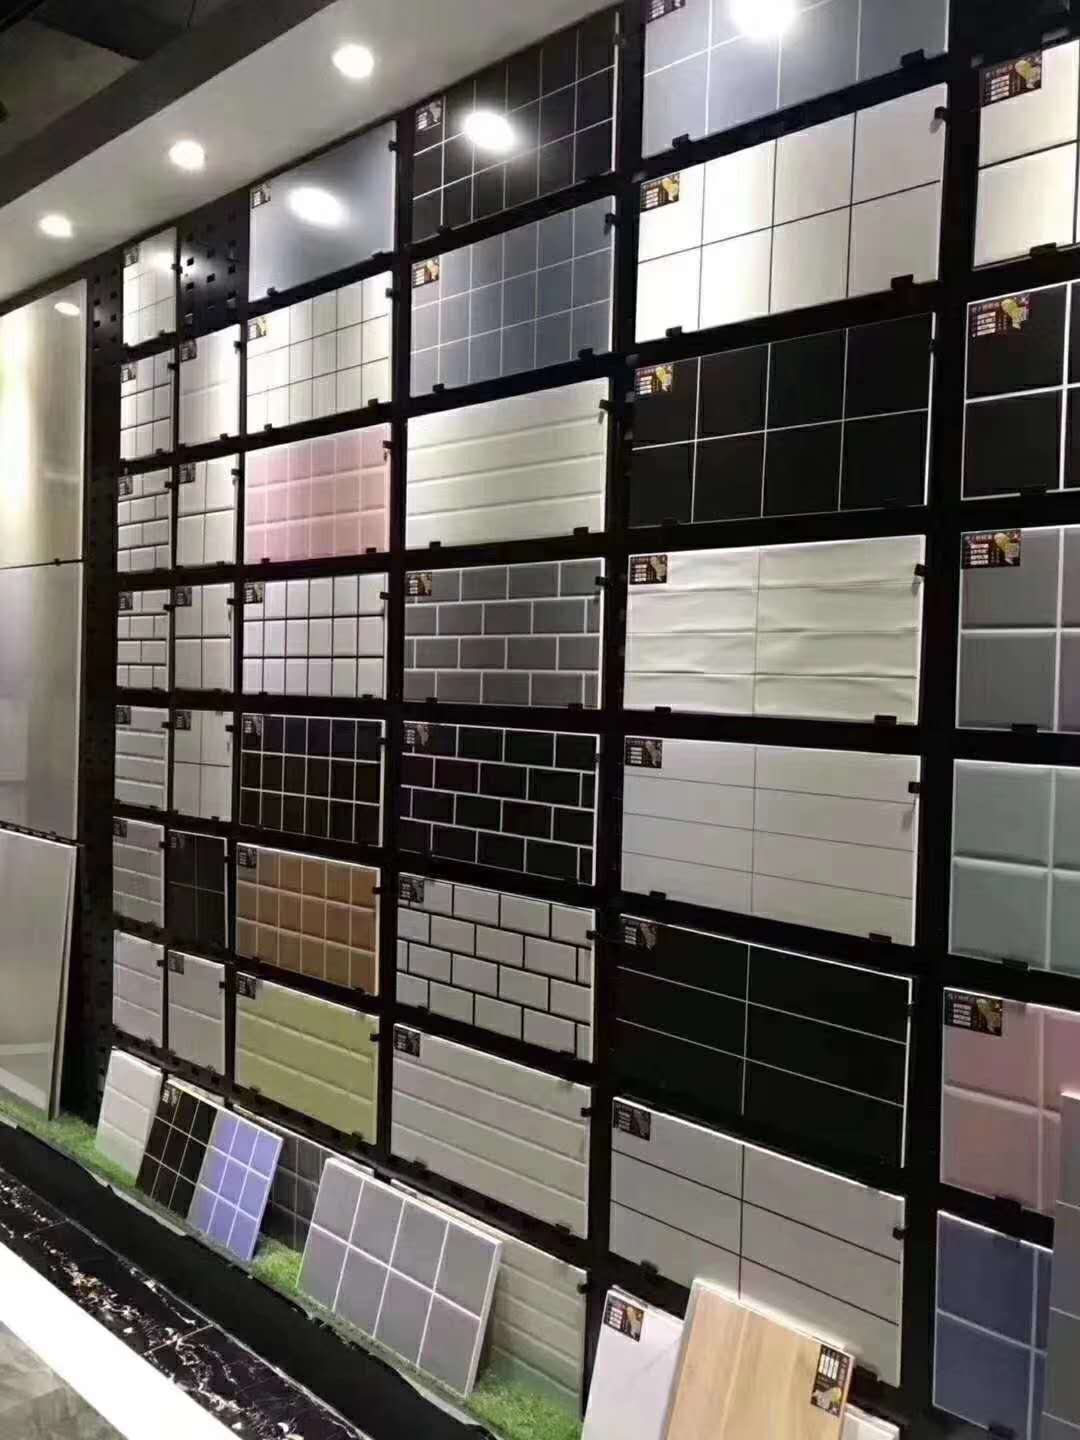 Interior Decorative Wall and Floor Tile 12x12 Ceramic Matt Tiles